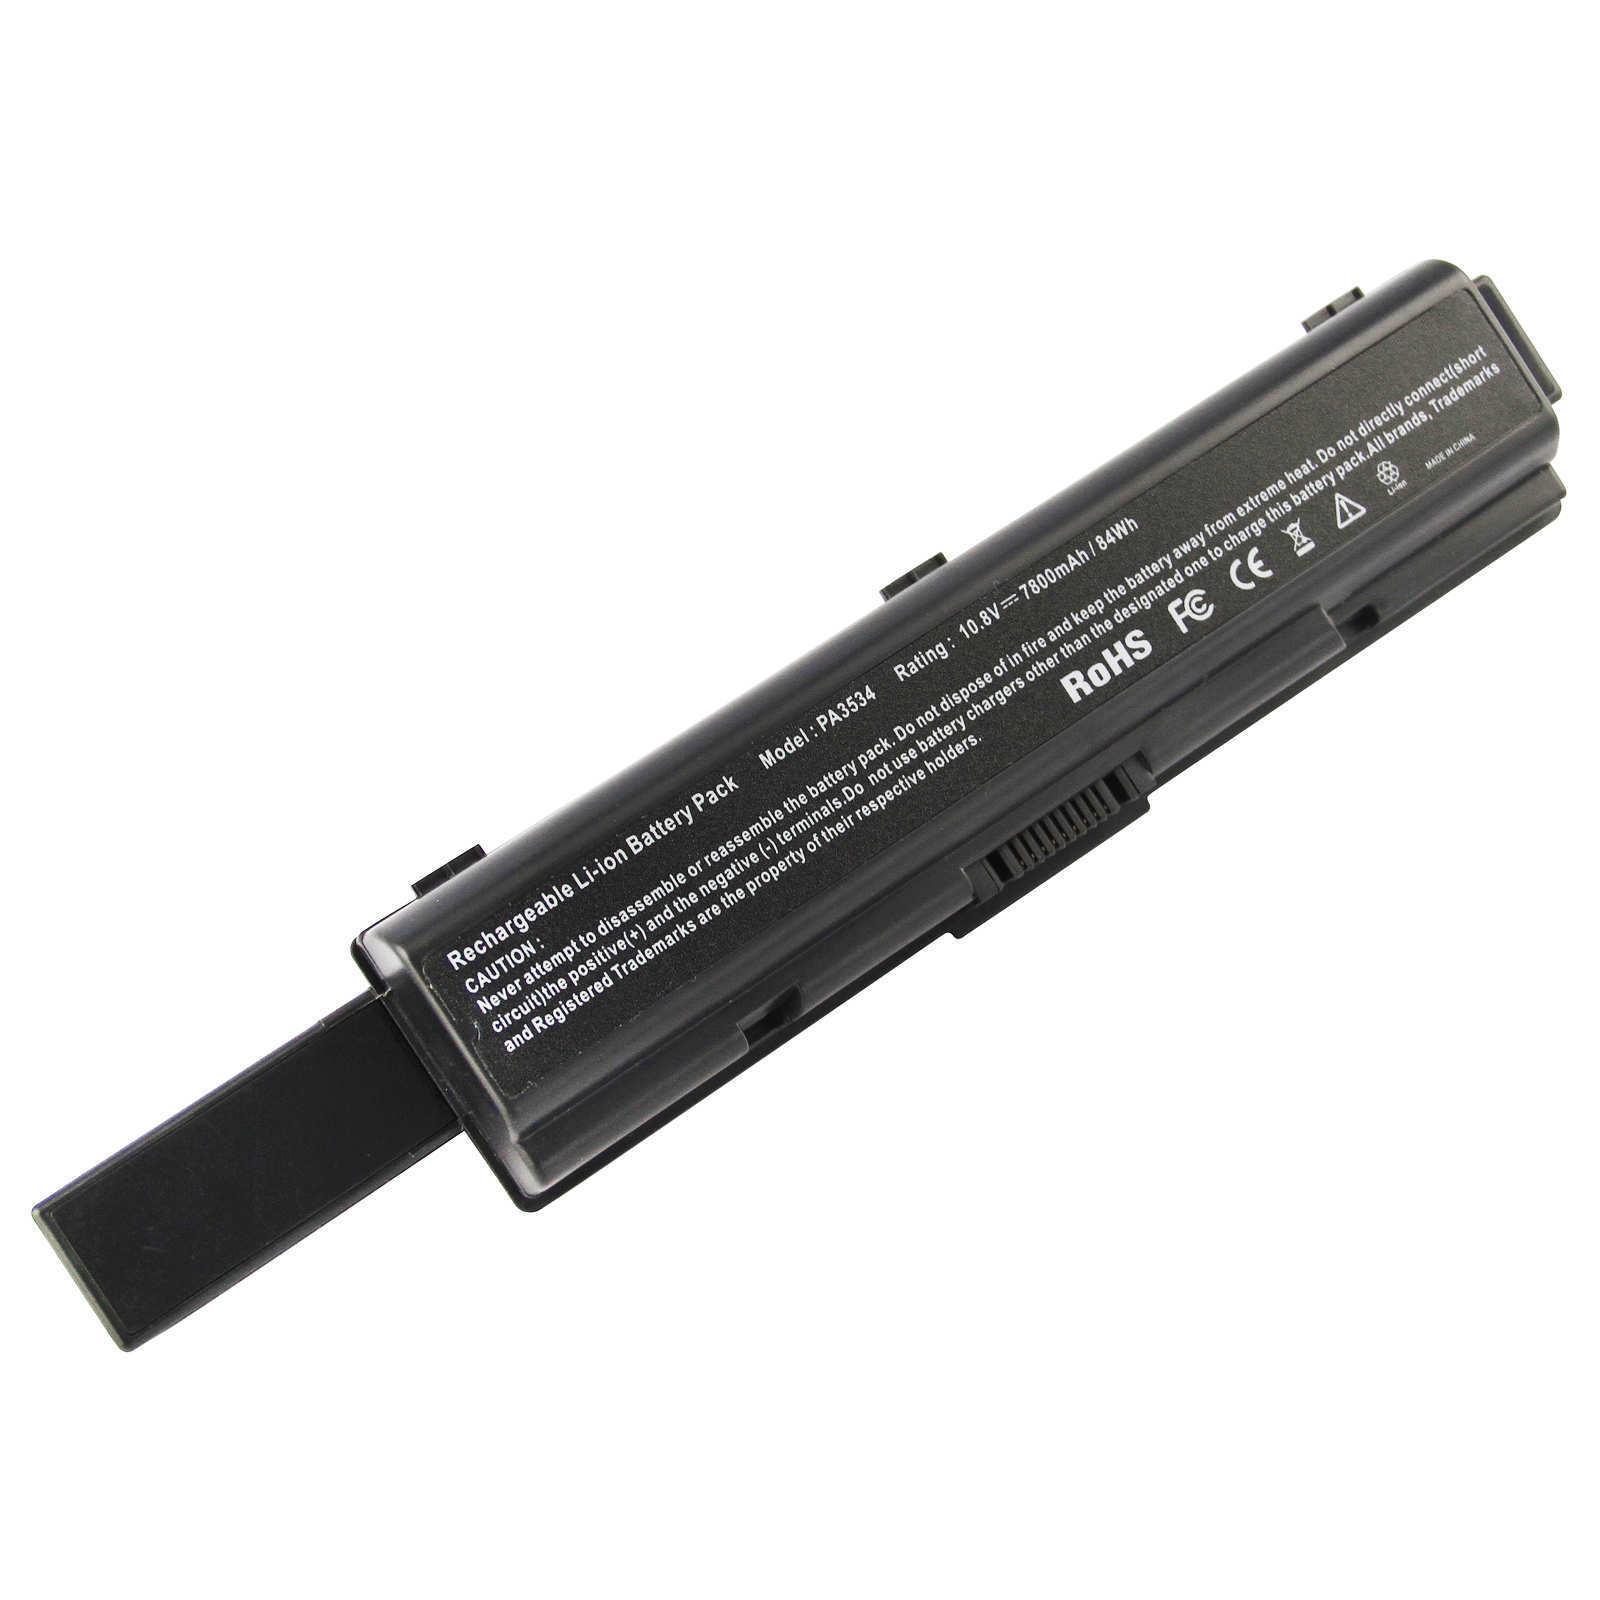 Replacement Toshiba Satellite A210-ST0 Battery